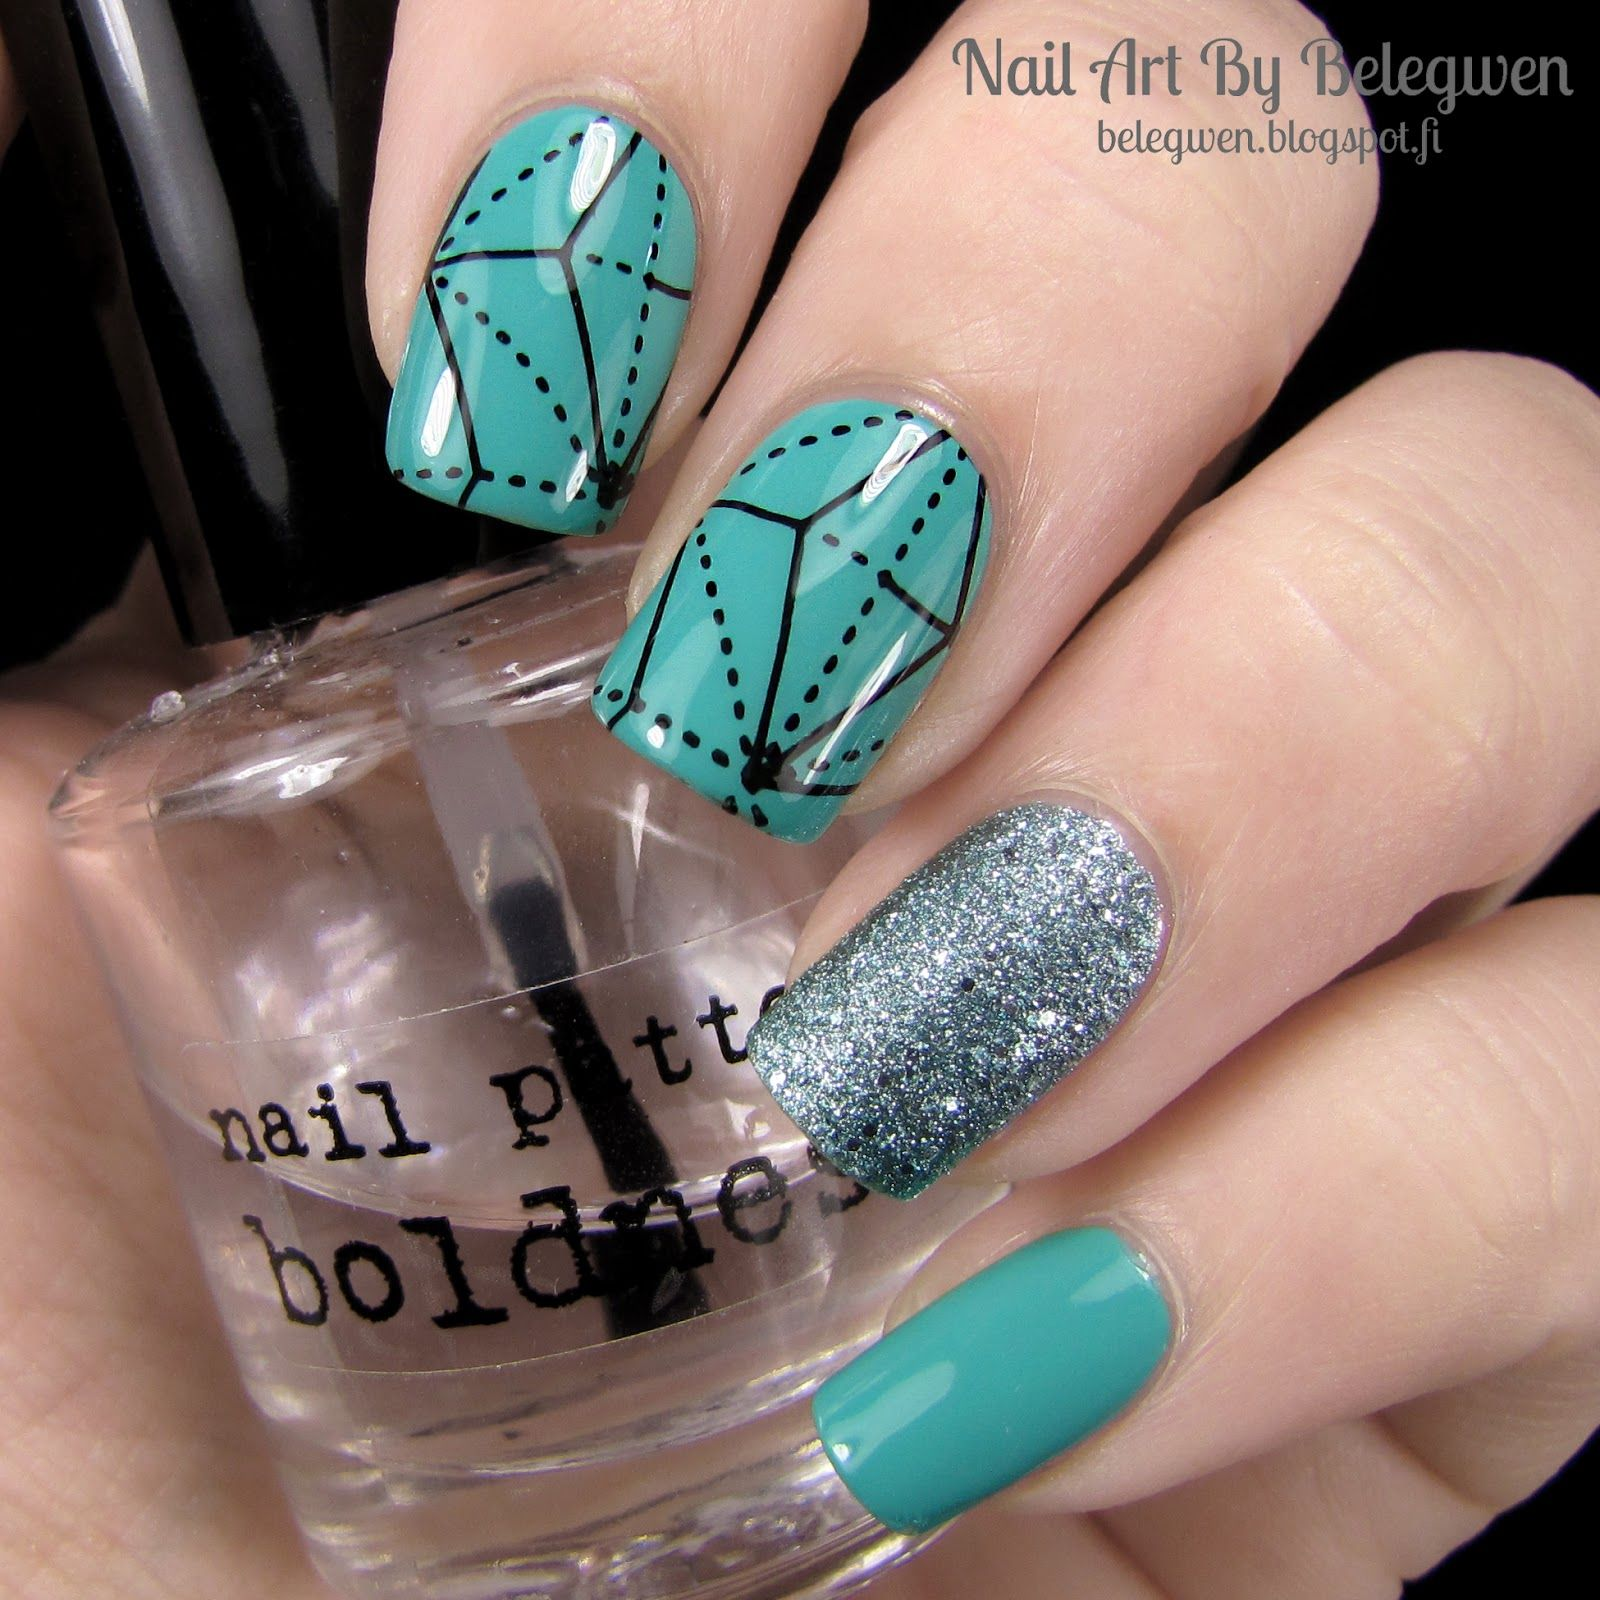 Nail Art by Belegwen: Depend nr. 54 and Jade Vine